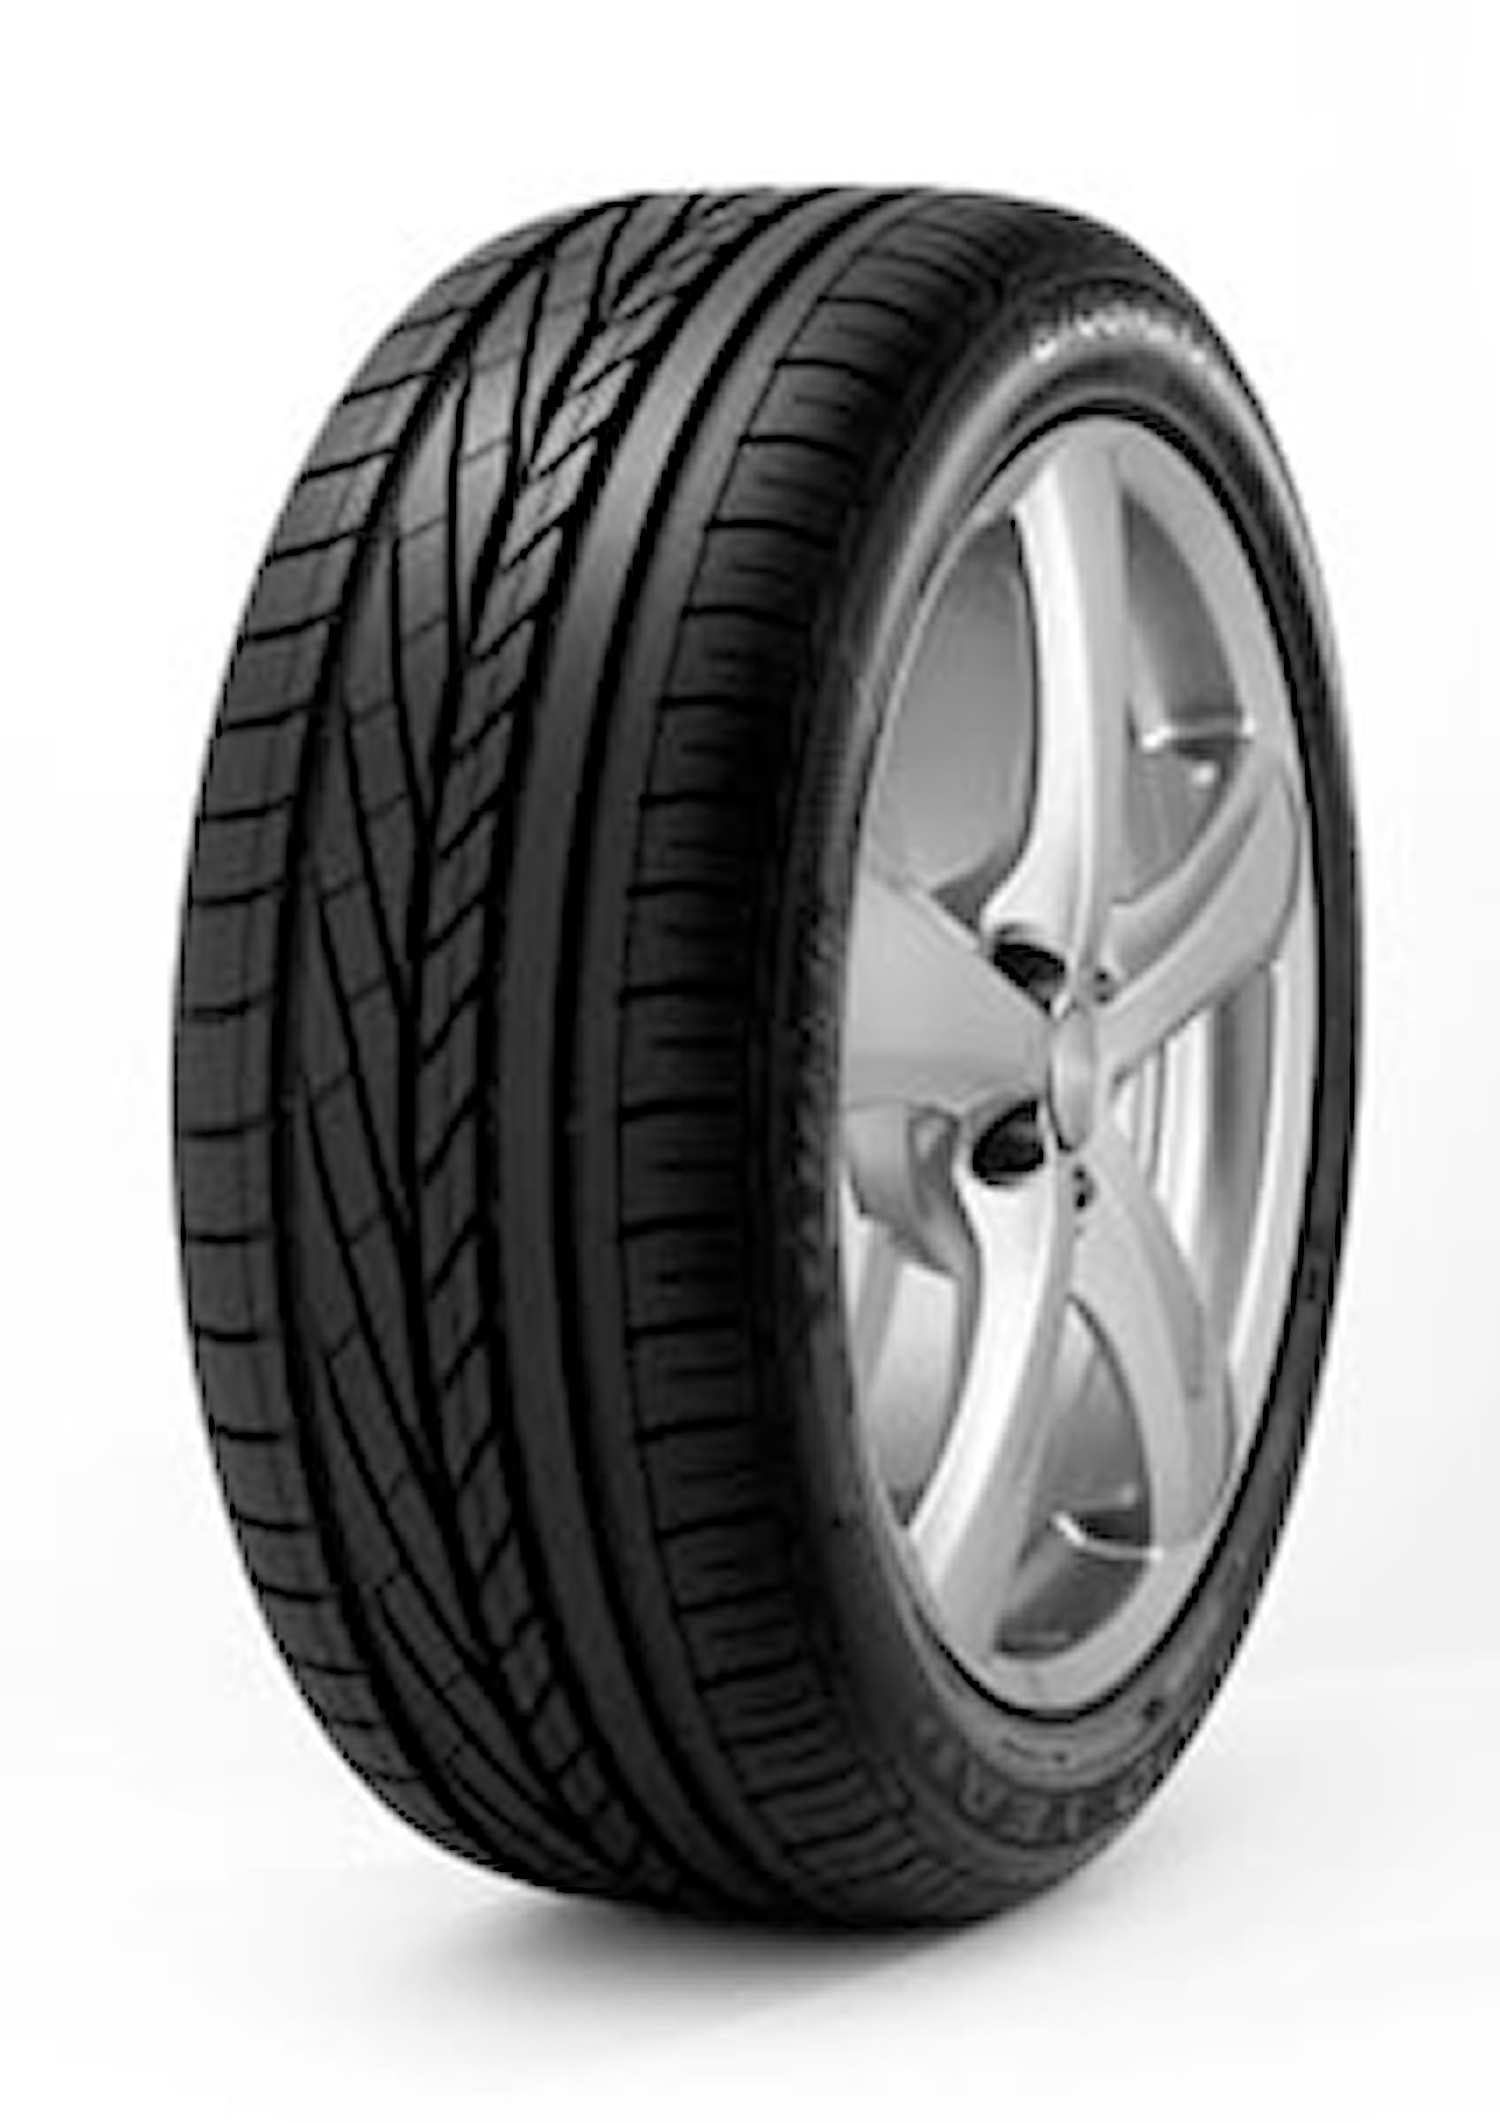 Goodyear ExcellenceROF MOE 91Y